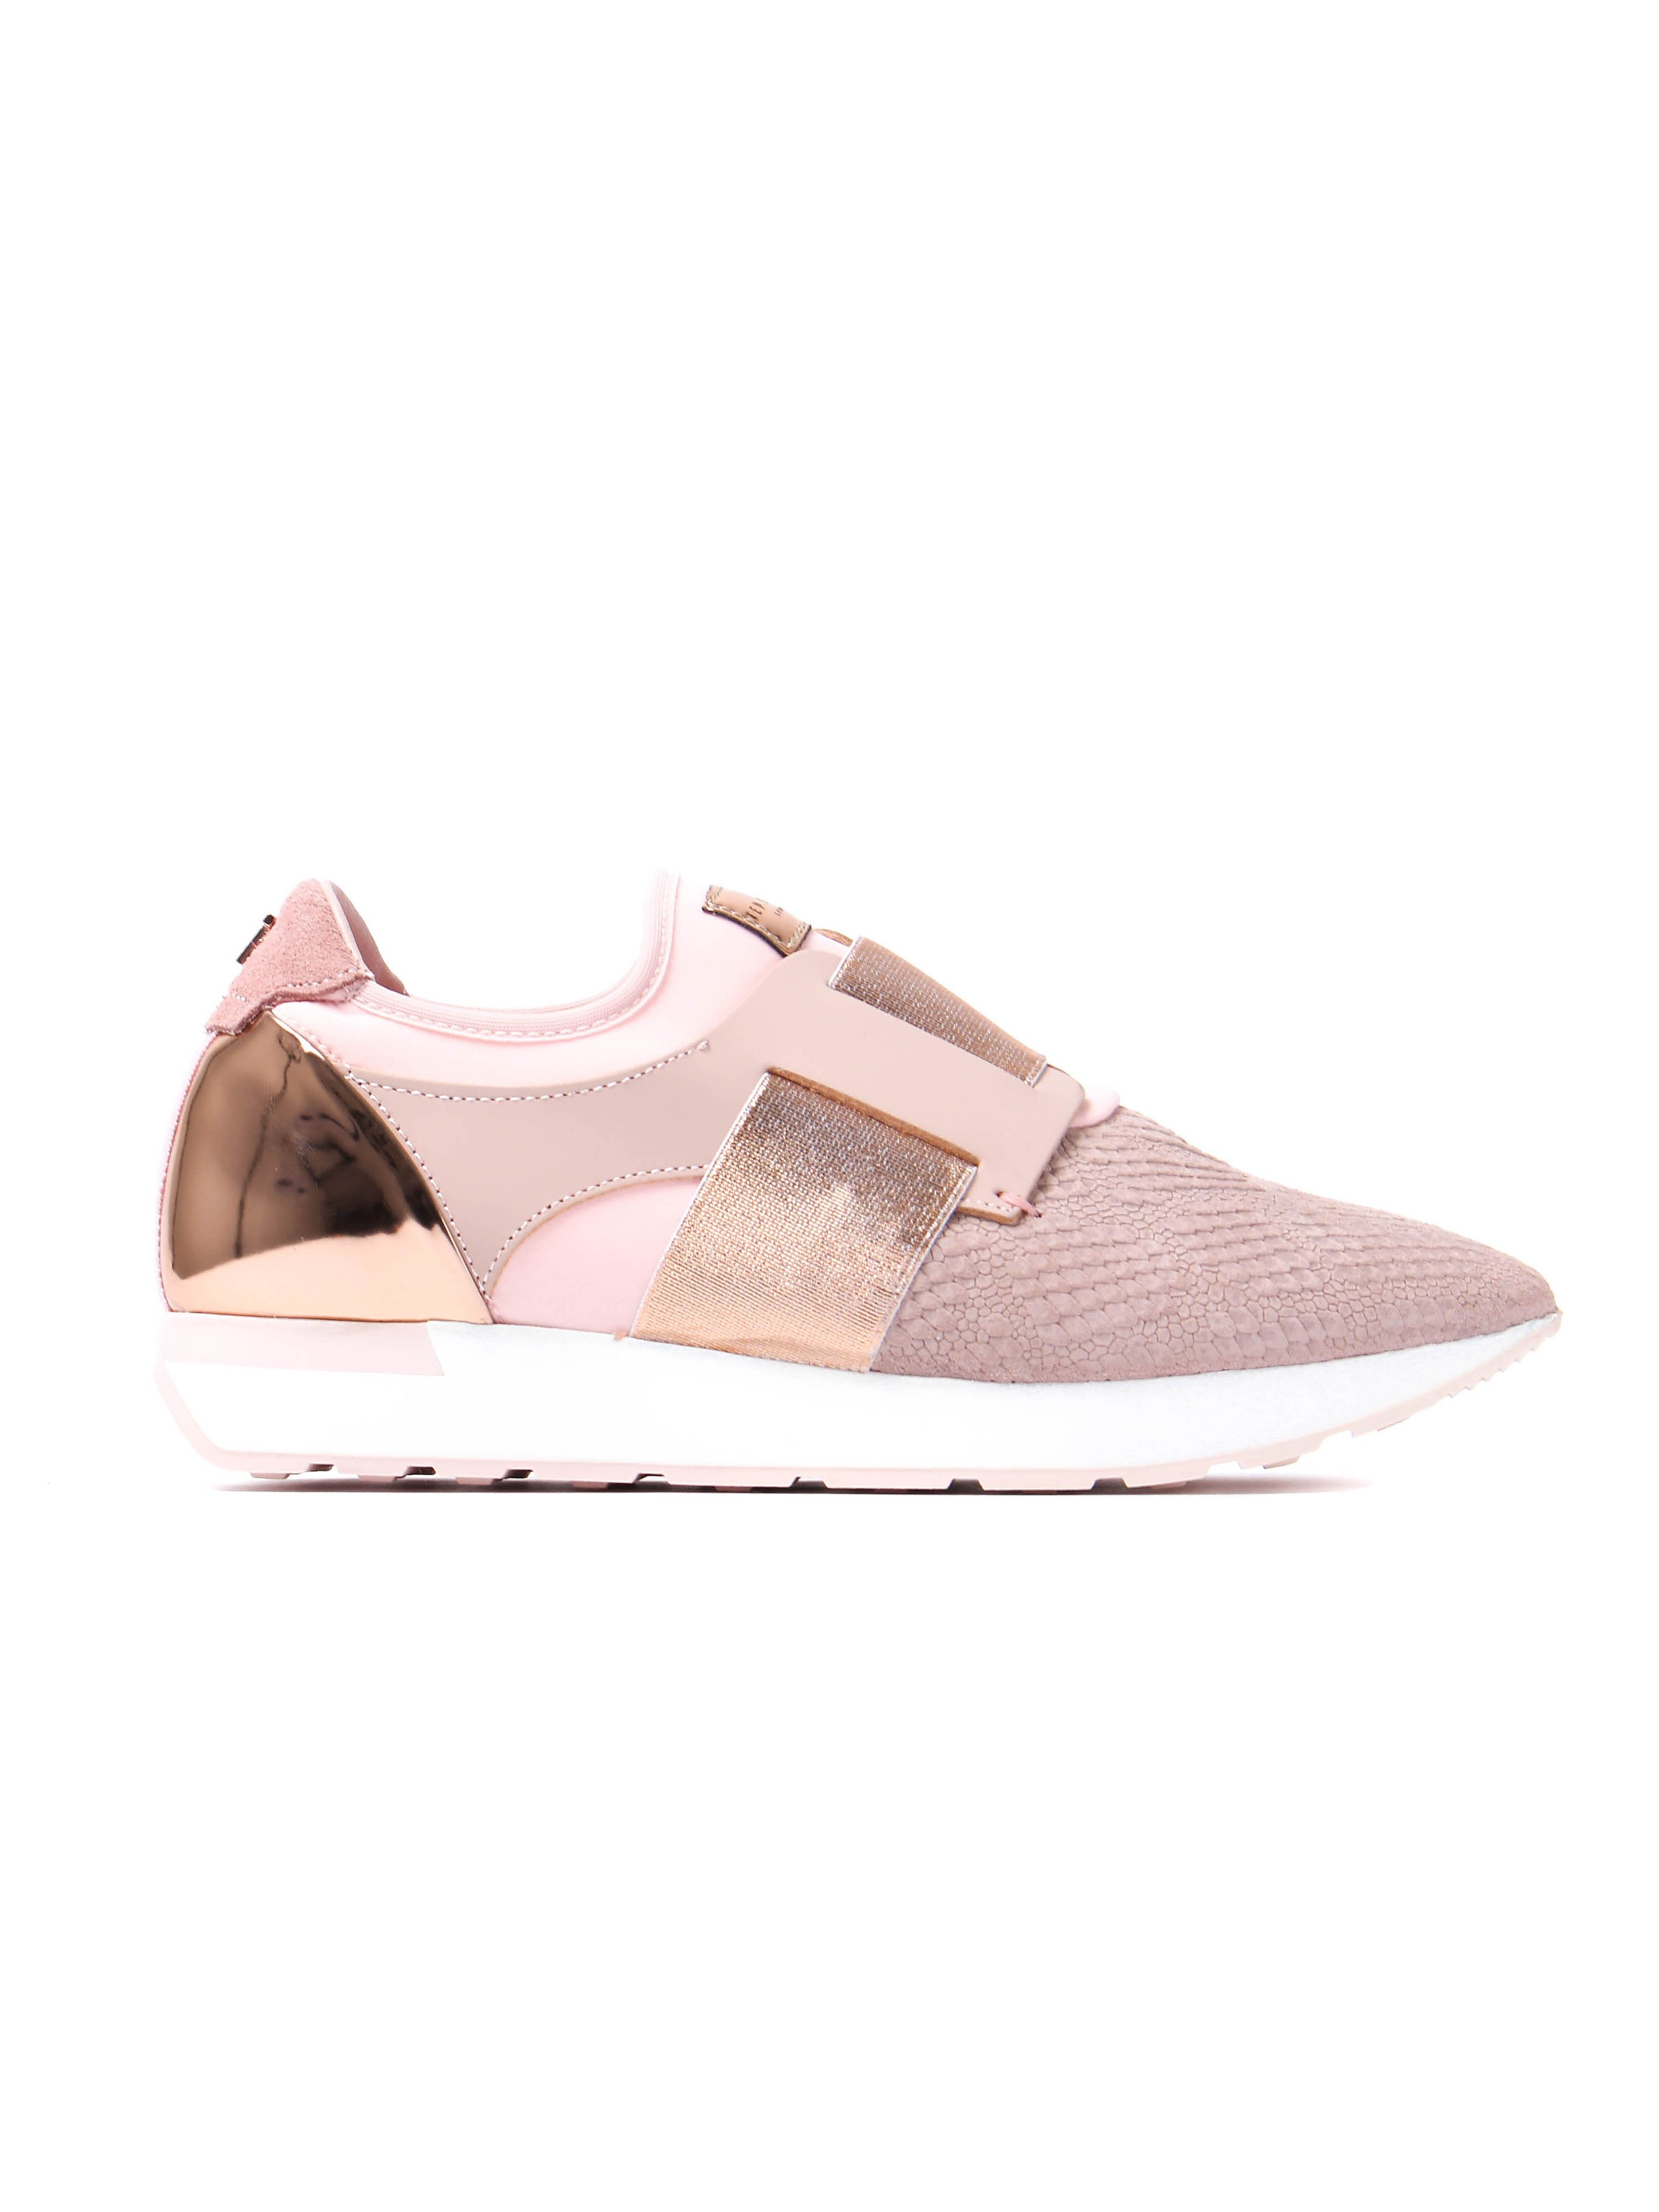 Ted Baker Women's Kygoa Embossed Trainers - Light Pink Leather